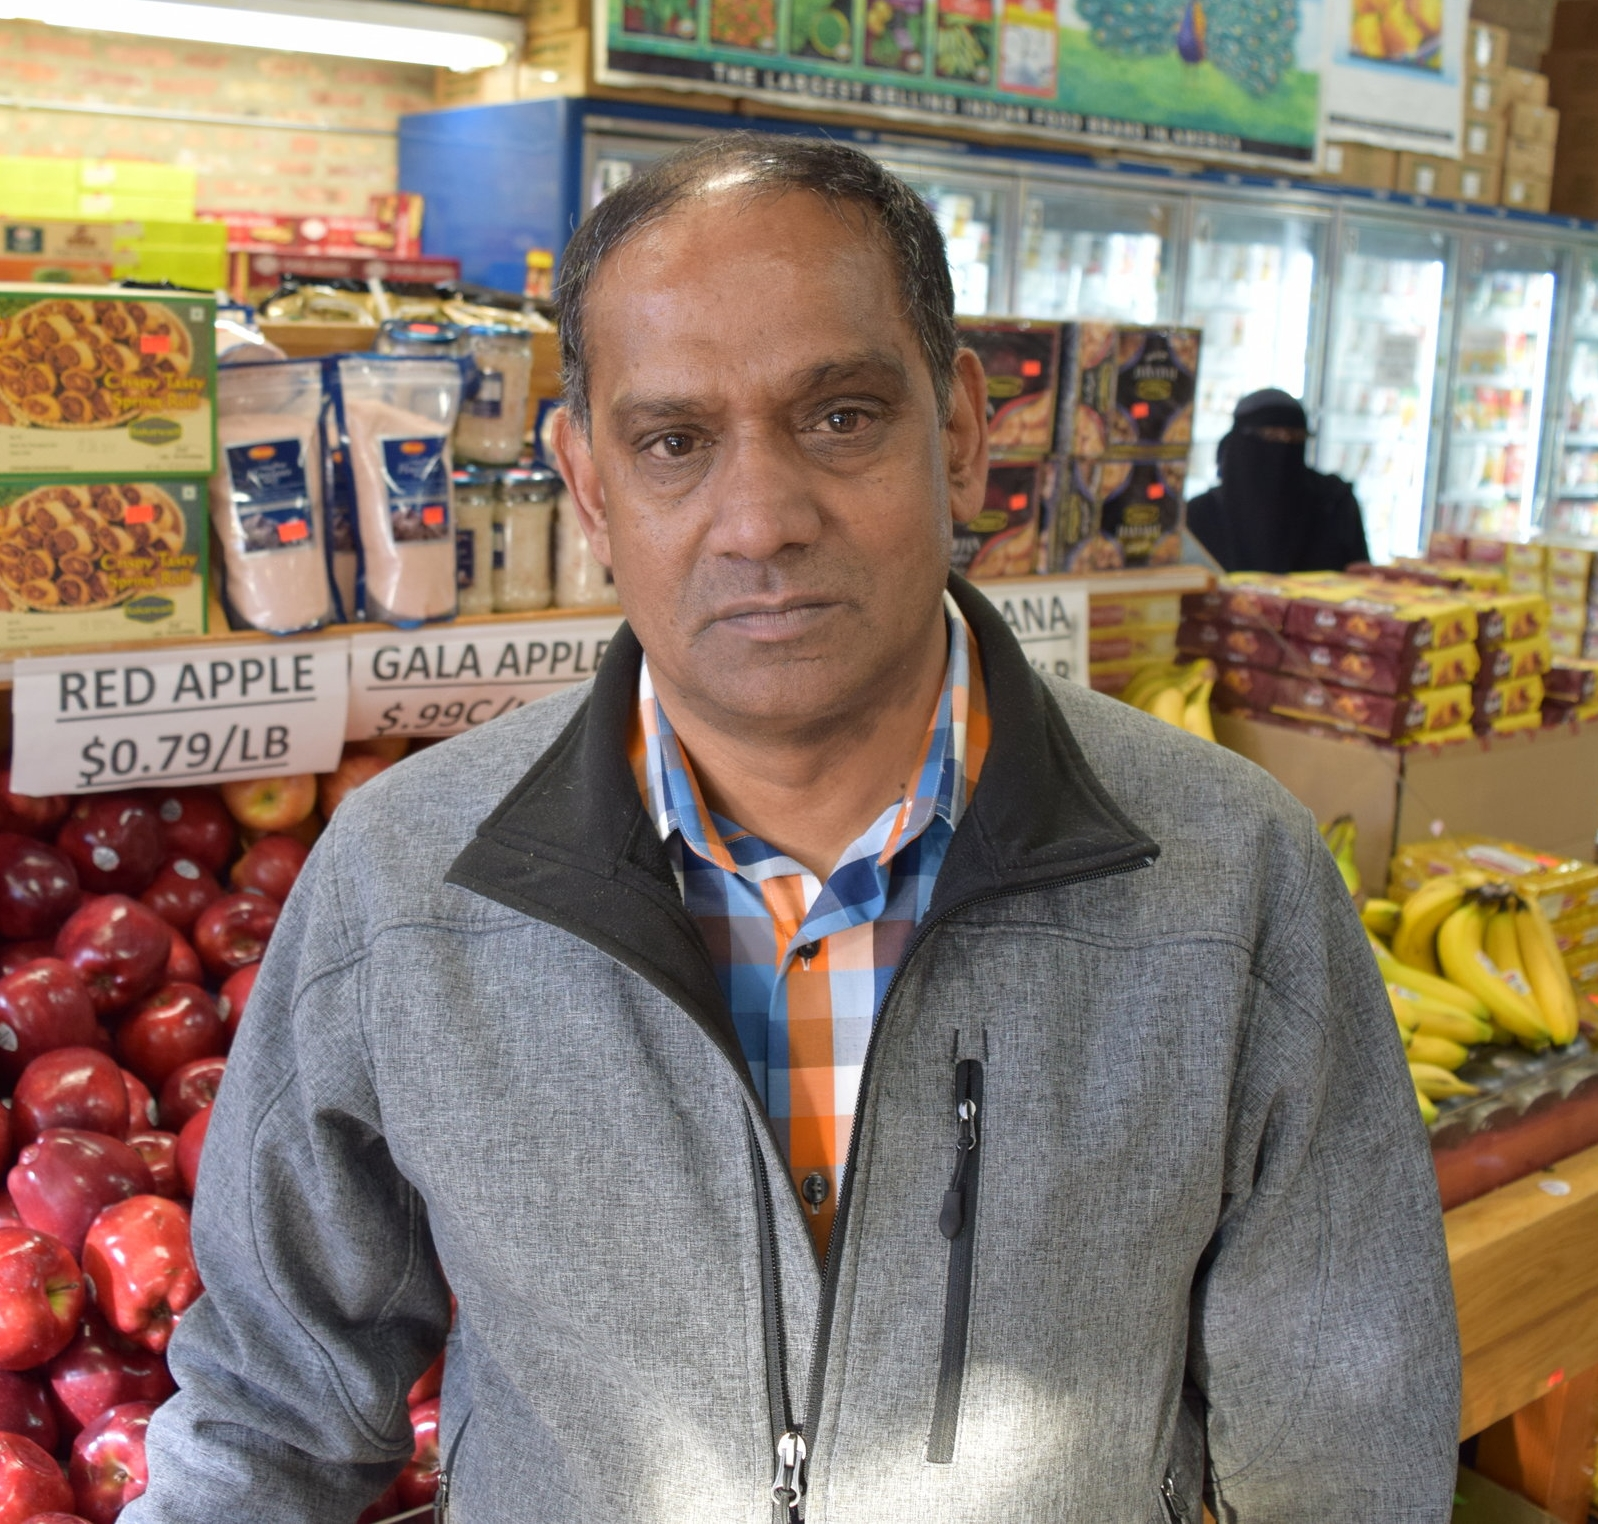 """Bobby Patel   Manager, Patel Brothers Grocery   """"This grocery store started in 1974. This is a large Indian and Pakistani community here. Patel Brothers has been here a long time, and we are selling good quality groceries. That's why everyone likes the Patel Brothers. People come from out of state, Indiana, Iowa, small suburbs…This area is a big market of Indians, Pakistanis, Iraqis…lots of mixing here in the community. We never have any problems."""""""